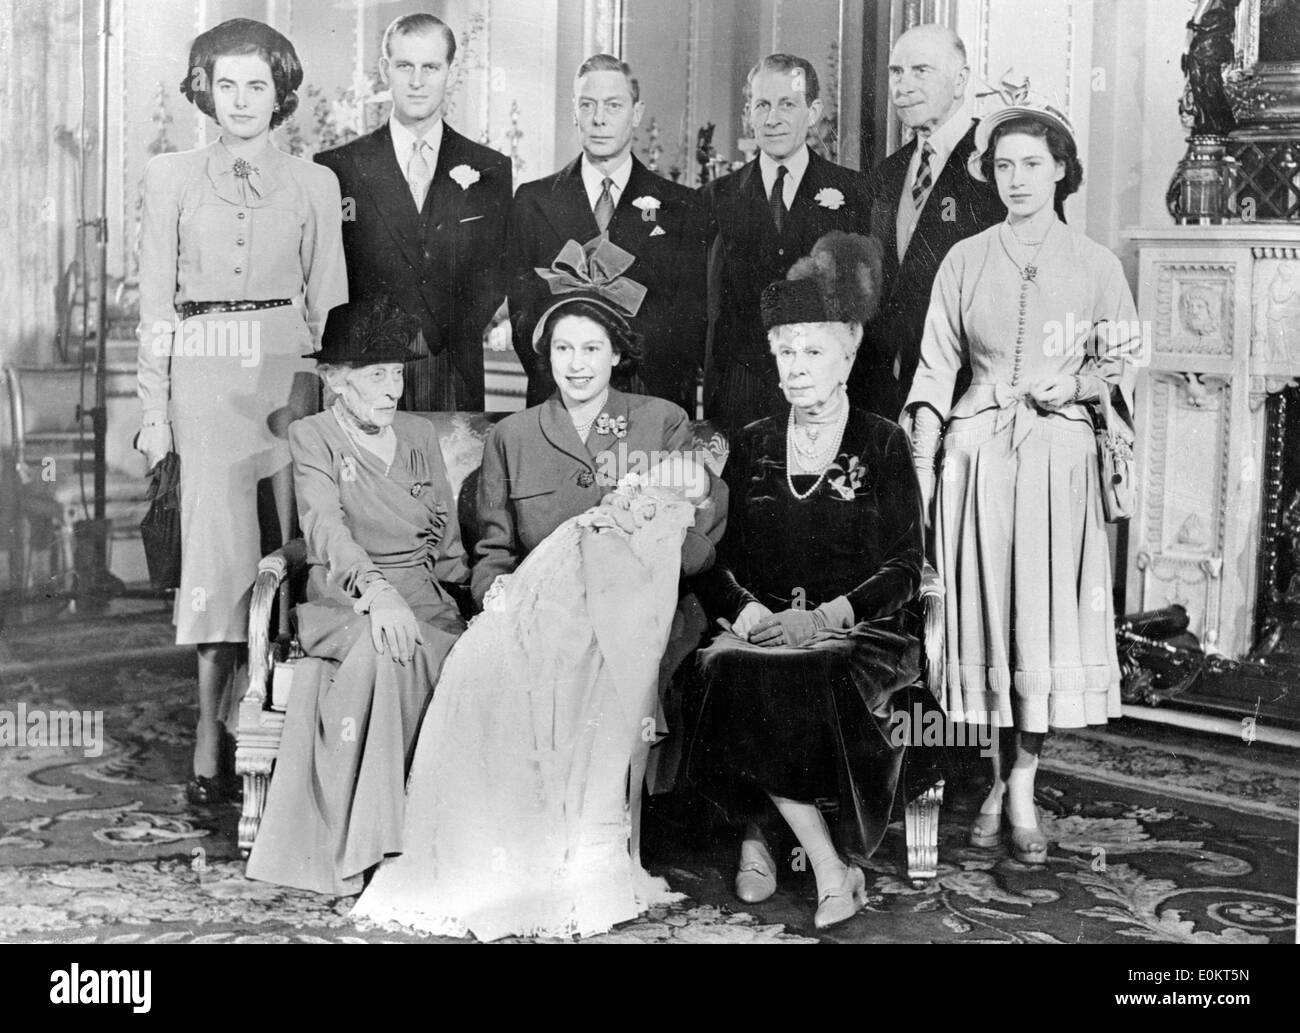 Members of the Windsor Royal Family along with King Haakon VII - Stock Image